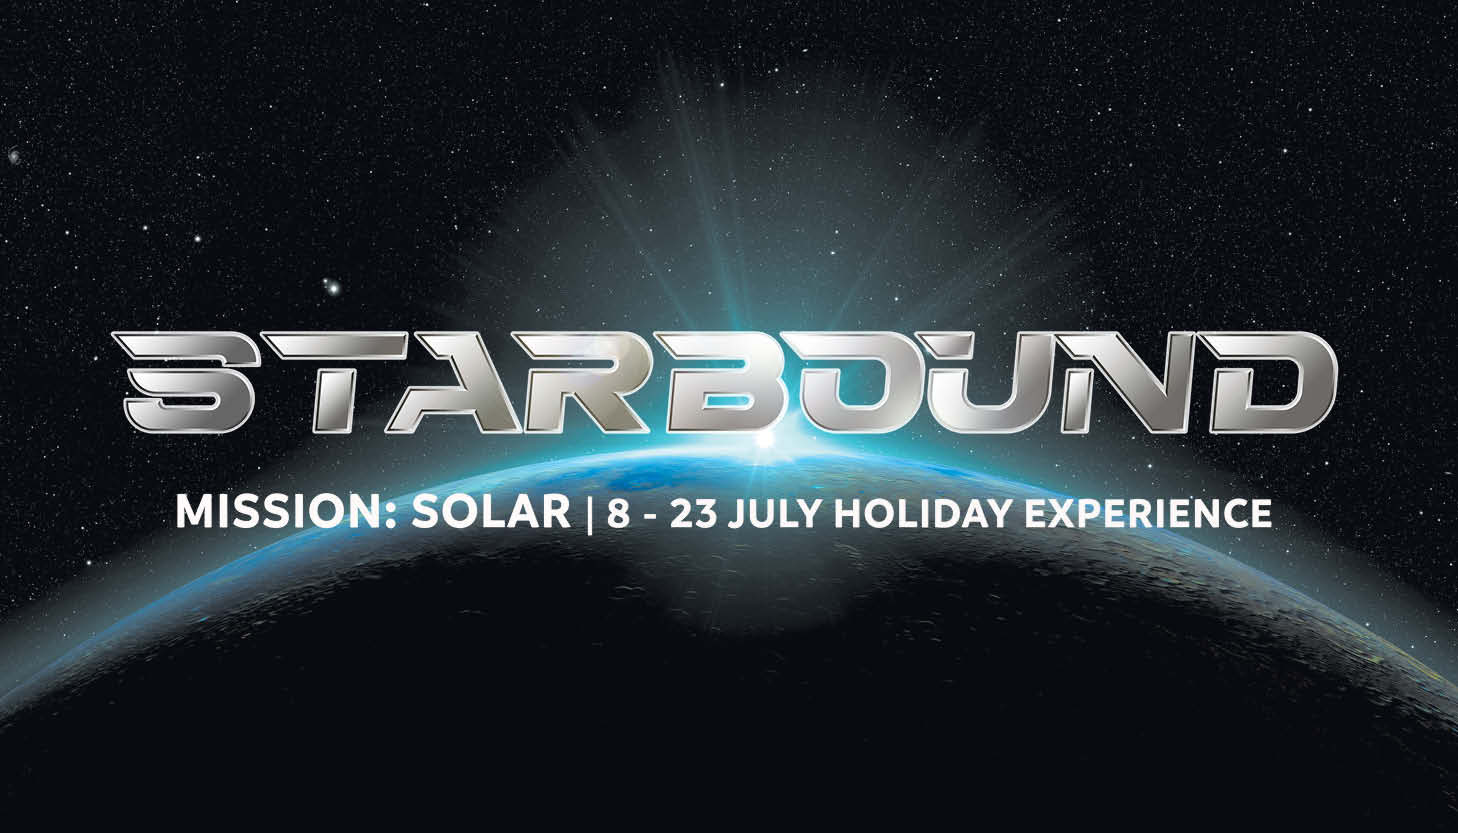 Starbound - Mission: Solar